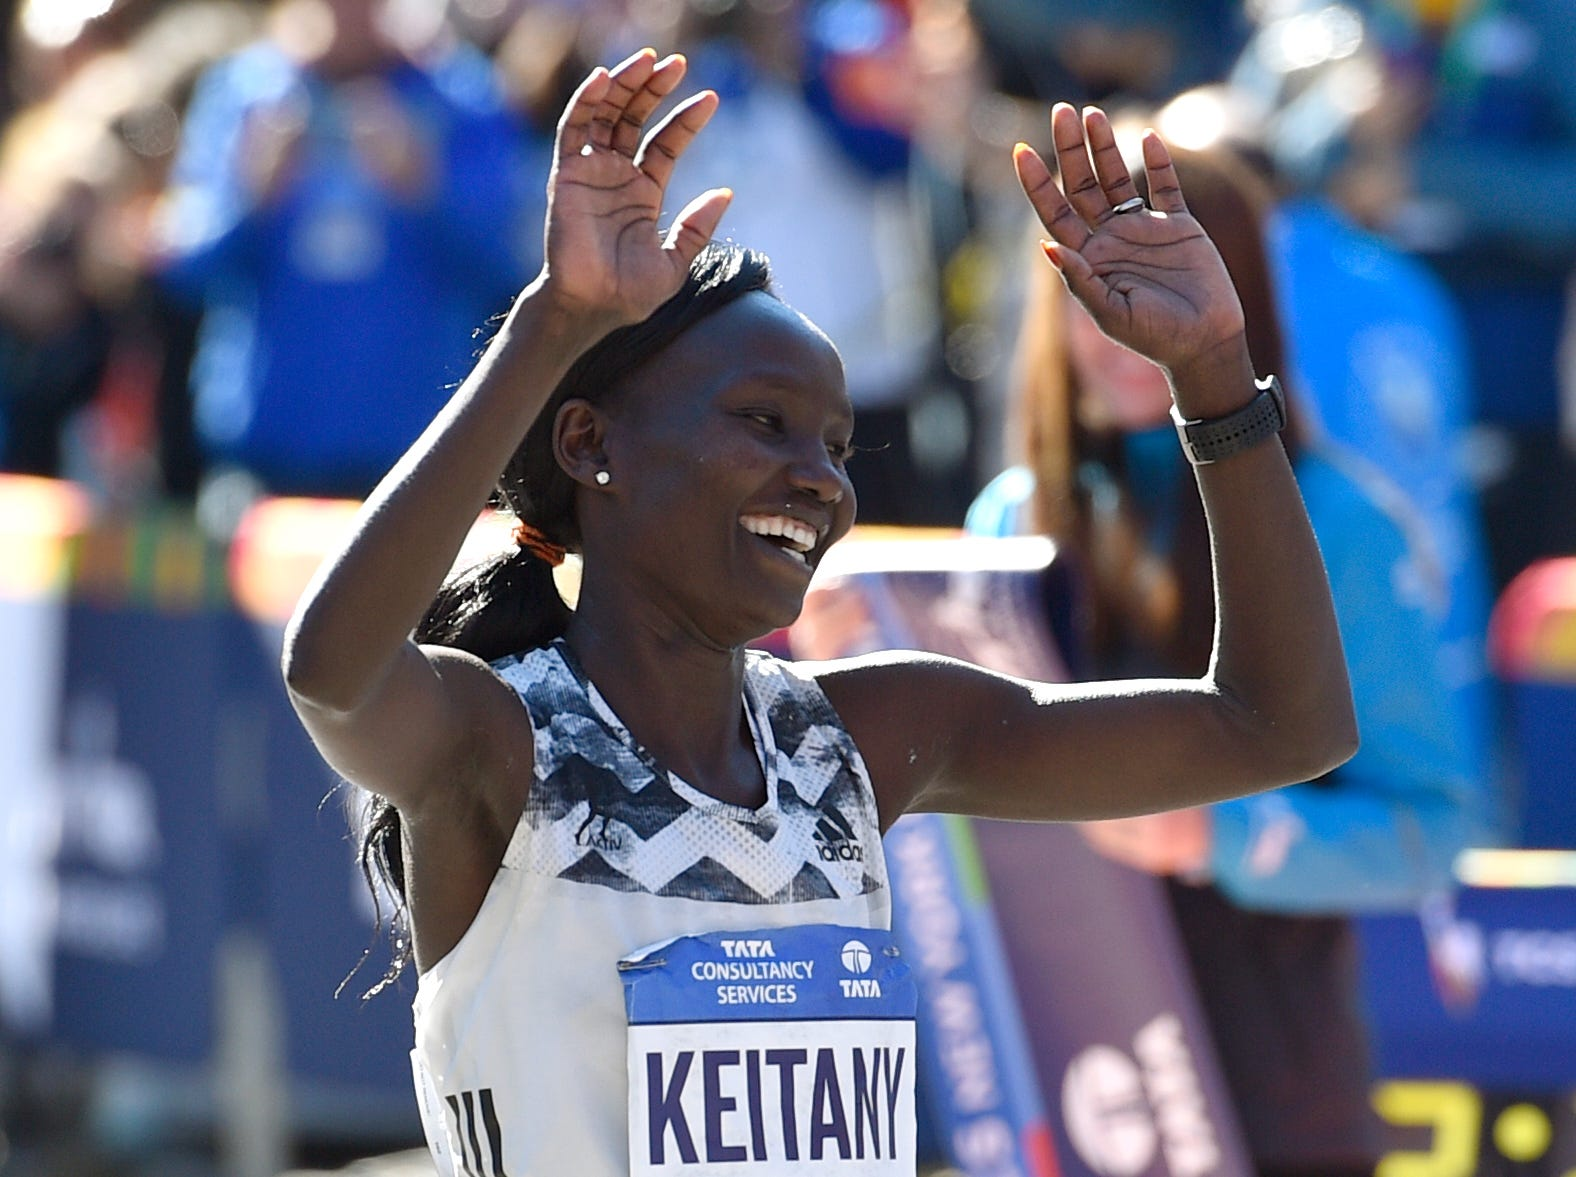 Mary Keitany smiles after crossing the finish line to win the women's division of the 2018 TCS New York City Marathon. It's her fourth title in NYC.